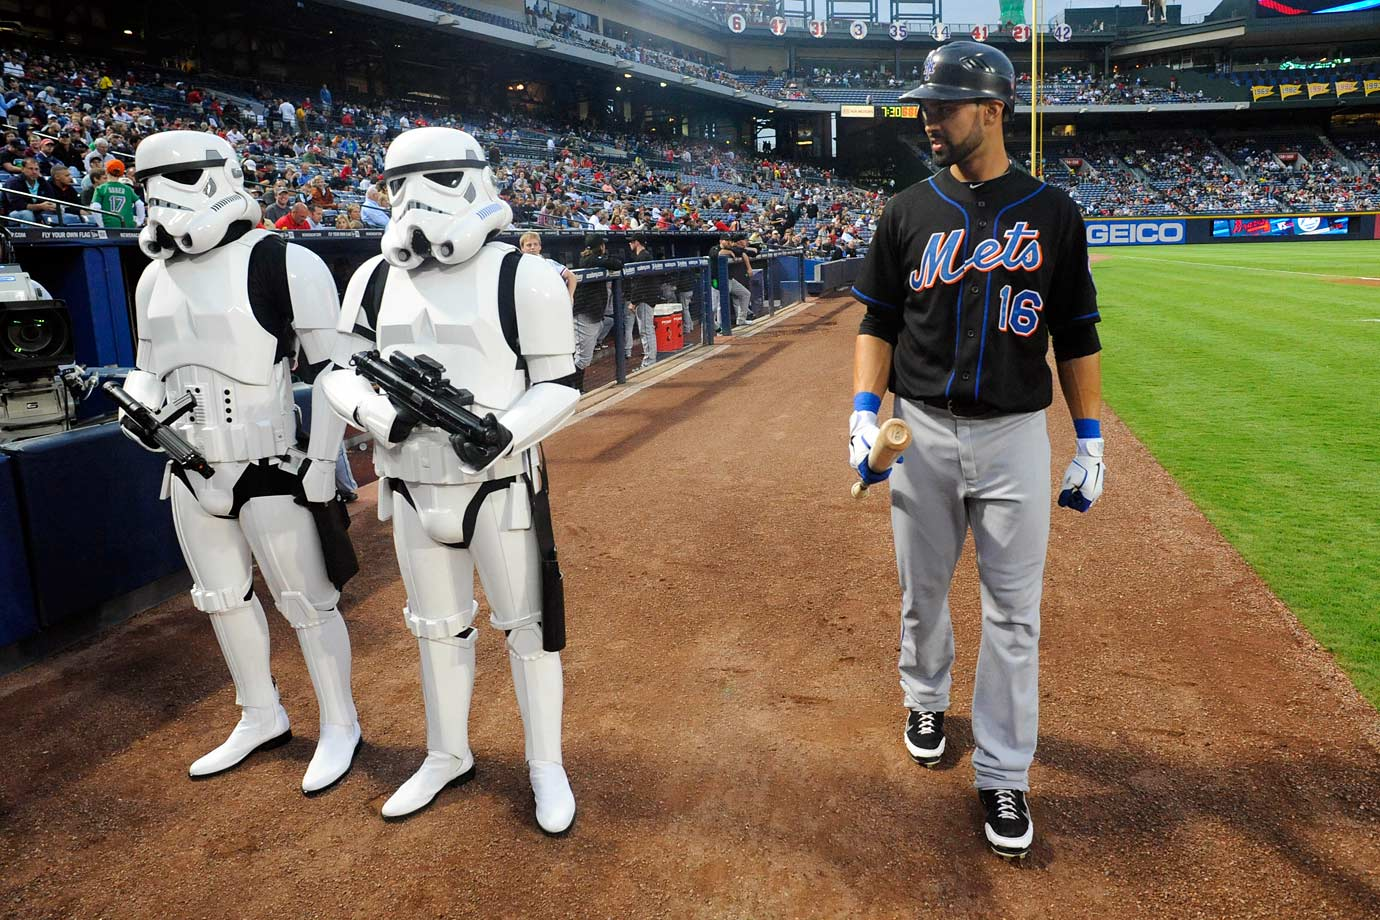 New York Mets center fielder Angel Pagan passes two stormtroopers before the start of the Mets game against the Atlanta Braves on Sept. 16, 2011 at Turner Field in Atlanta.